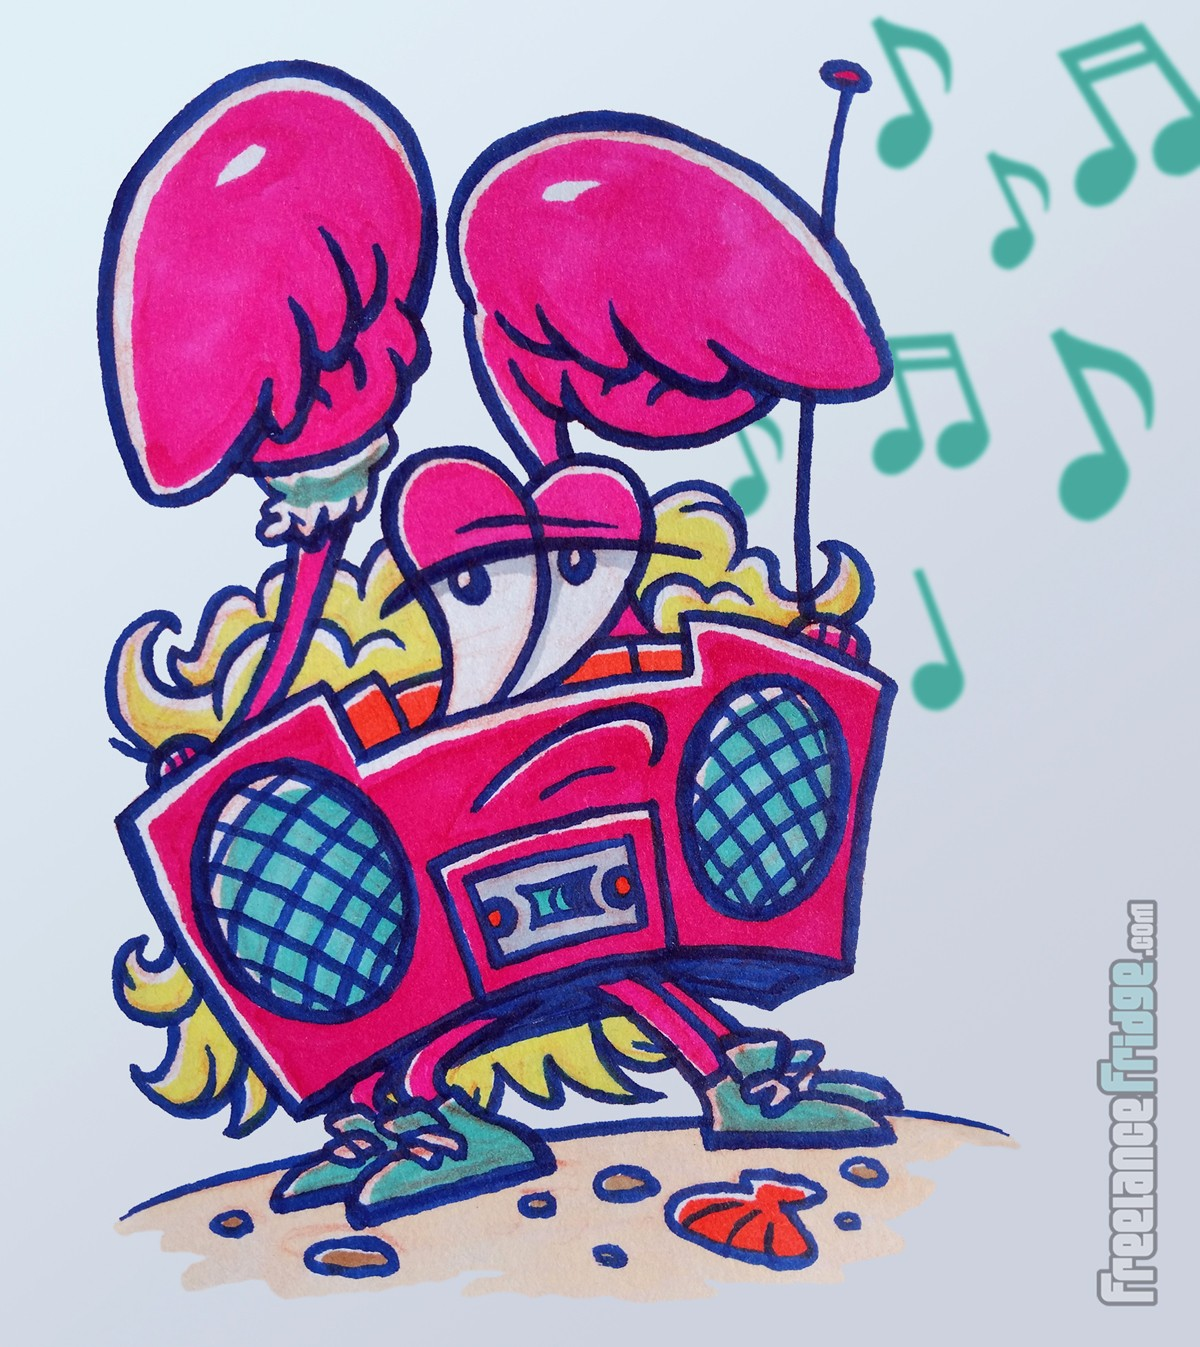 Hot Pink Crab Boombox Funny 1980s Character Creature Concept Cartoon Pencil and Color Markers Drawing Illustration